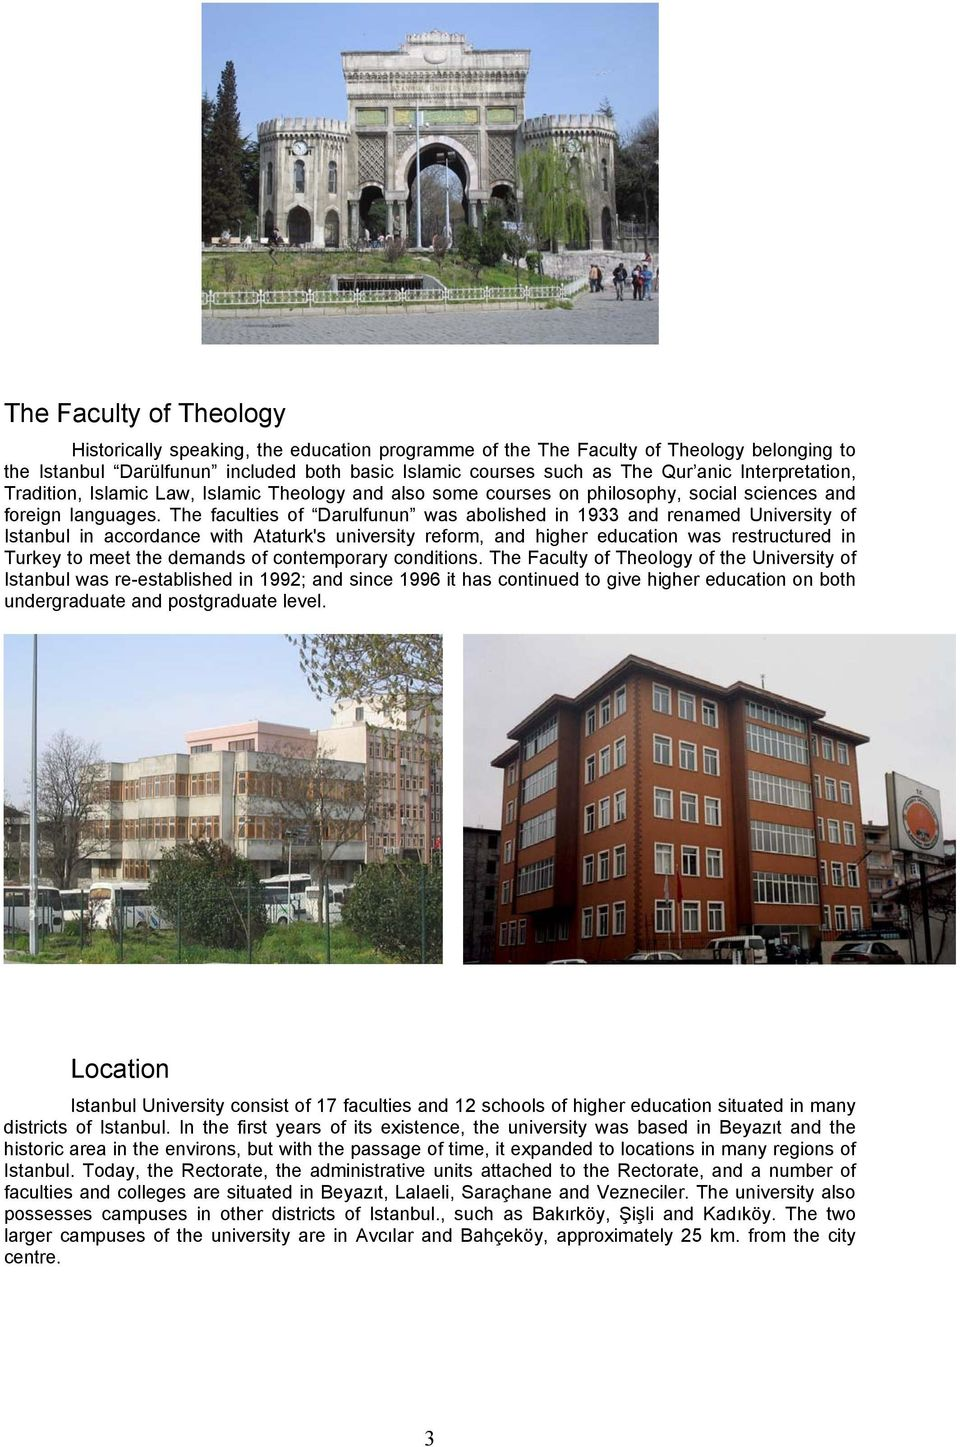 The faculties f Darulfunun was ablished in 1933 and renamed University f Istanbul in accrdance with Ataturk's university refrm, and higher educatin was restructured in Turkey t meet the demands f